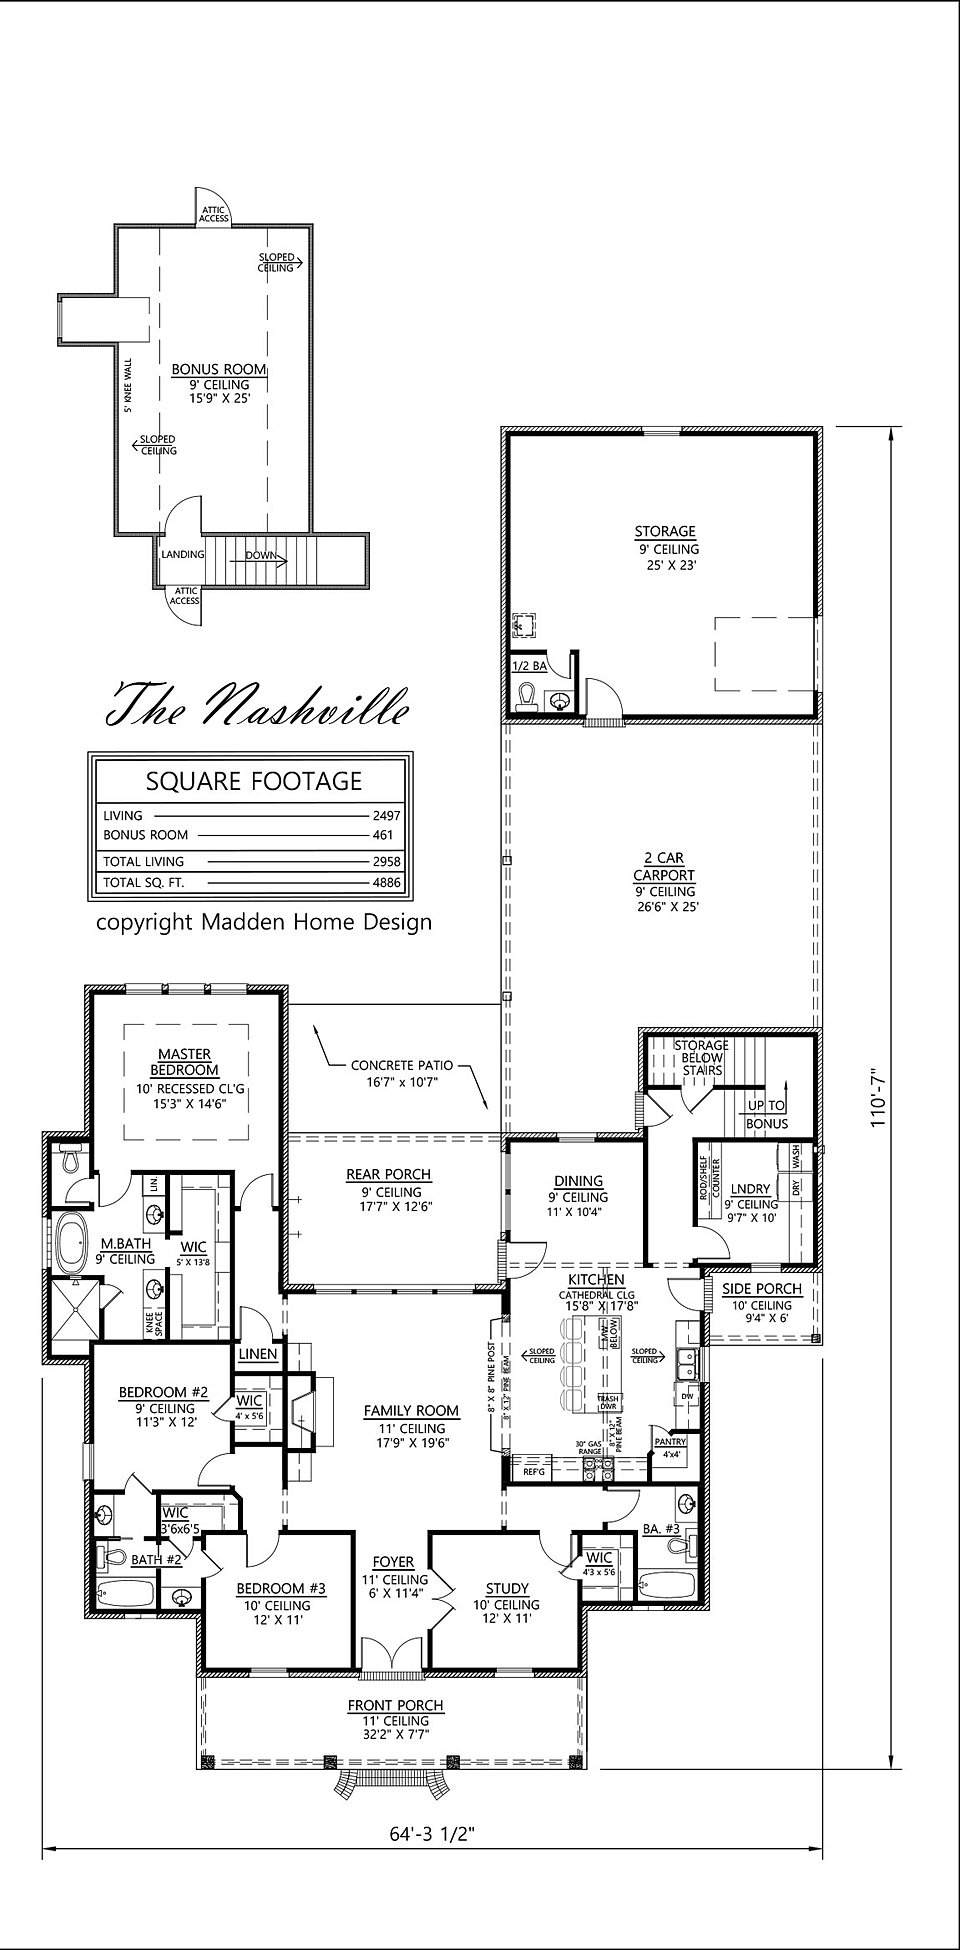 madden home design the nashville to purchase click here